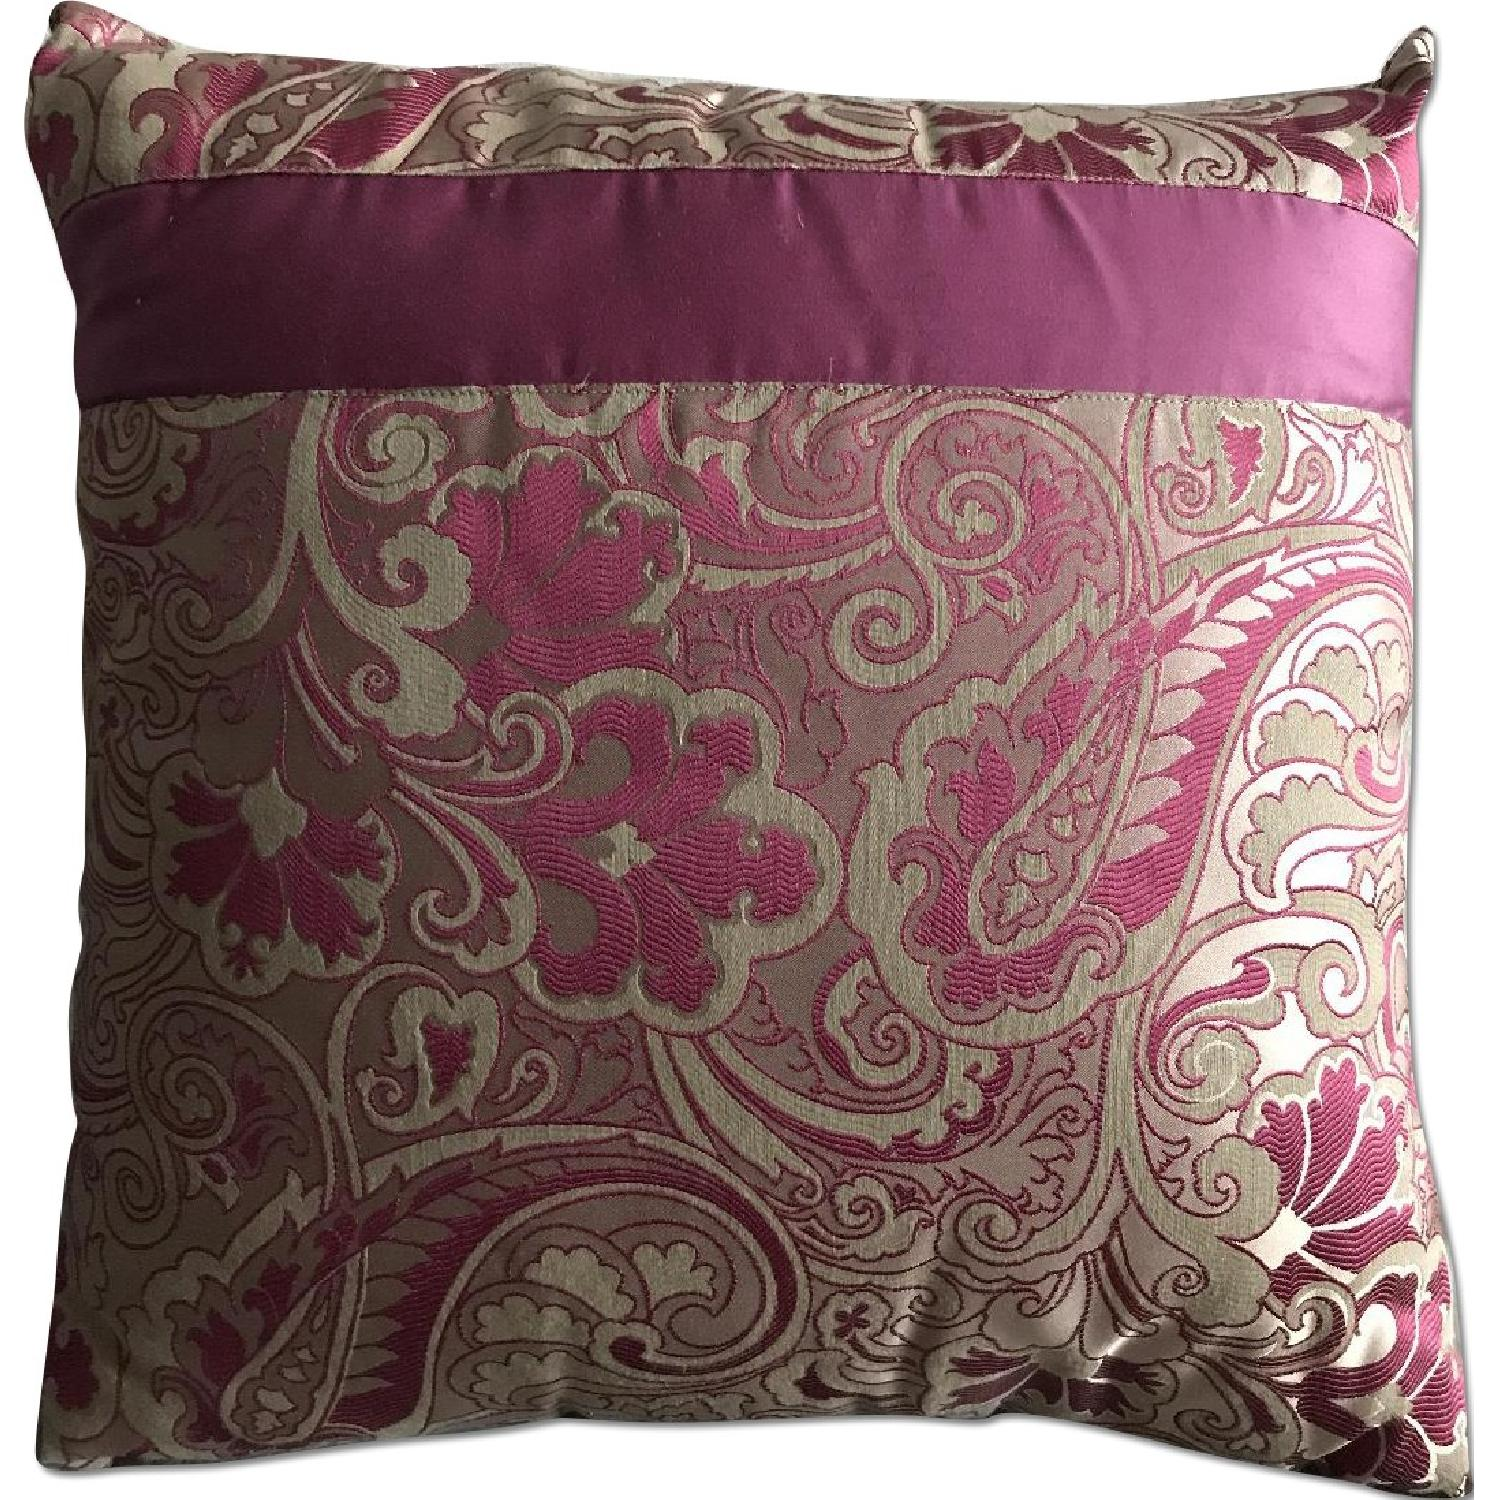 Etro Home Pink Paisley Square Decorative Pillow - image-0